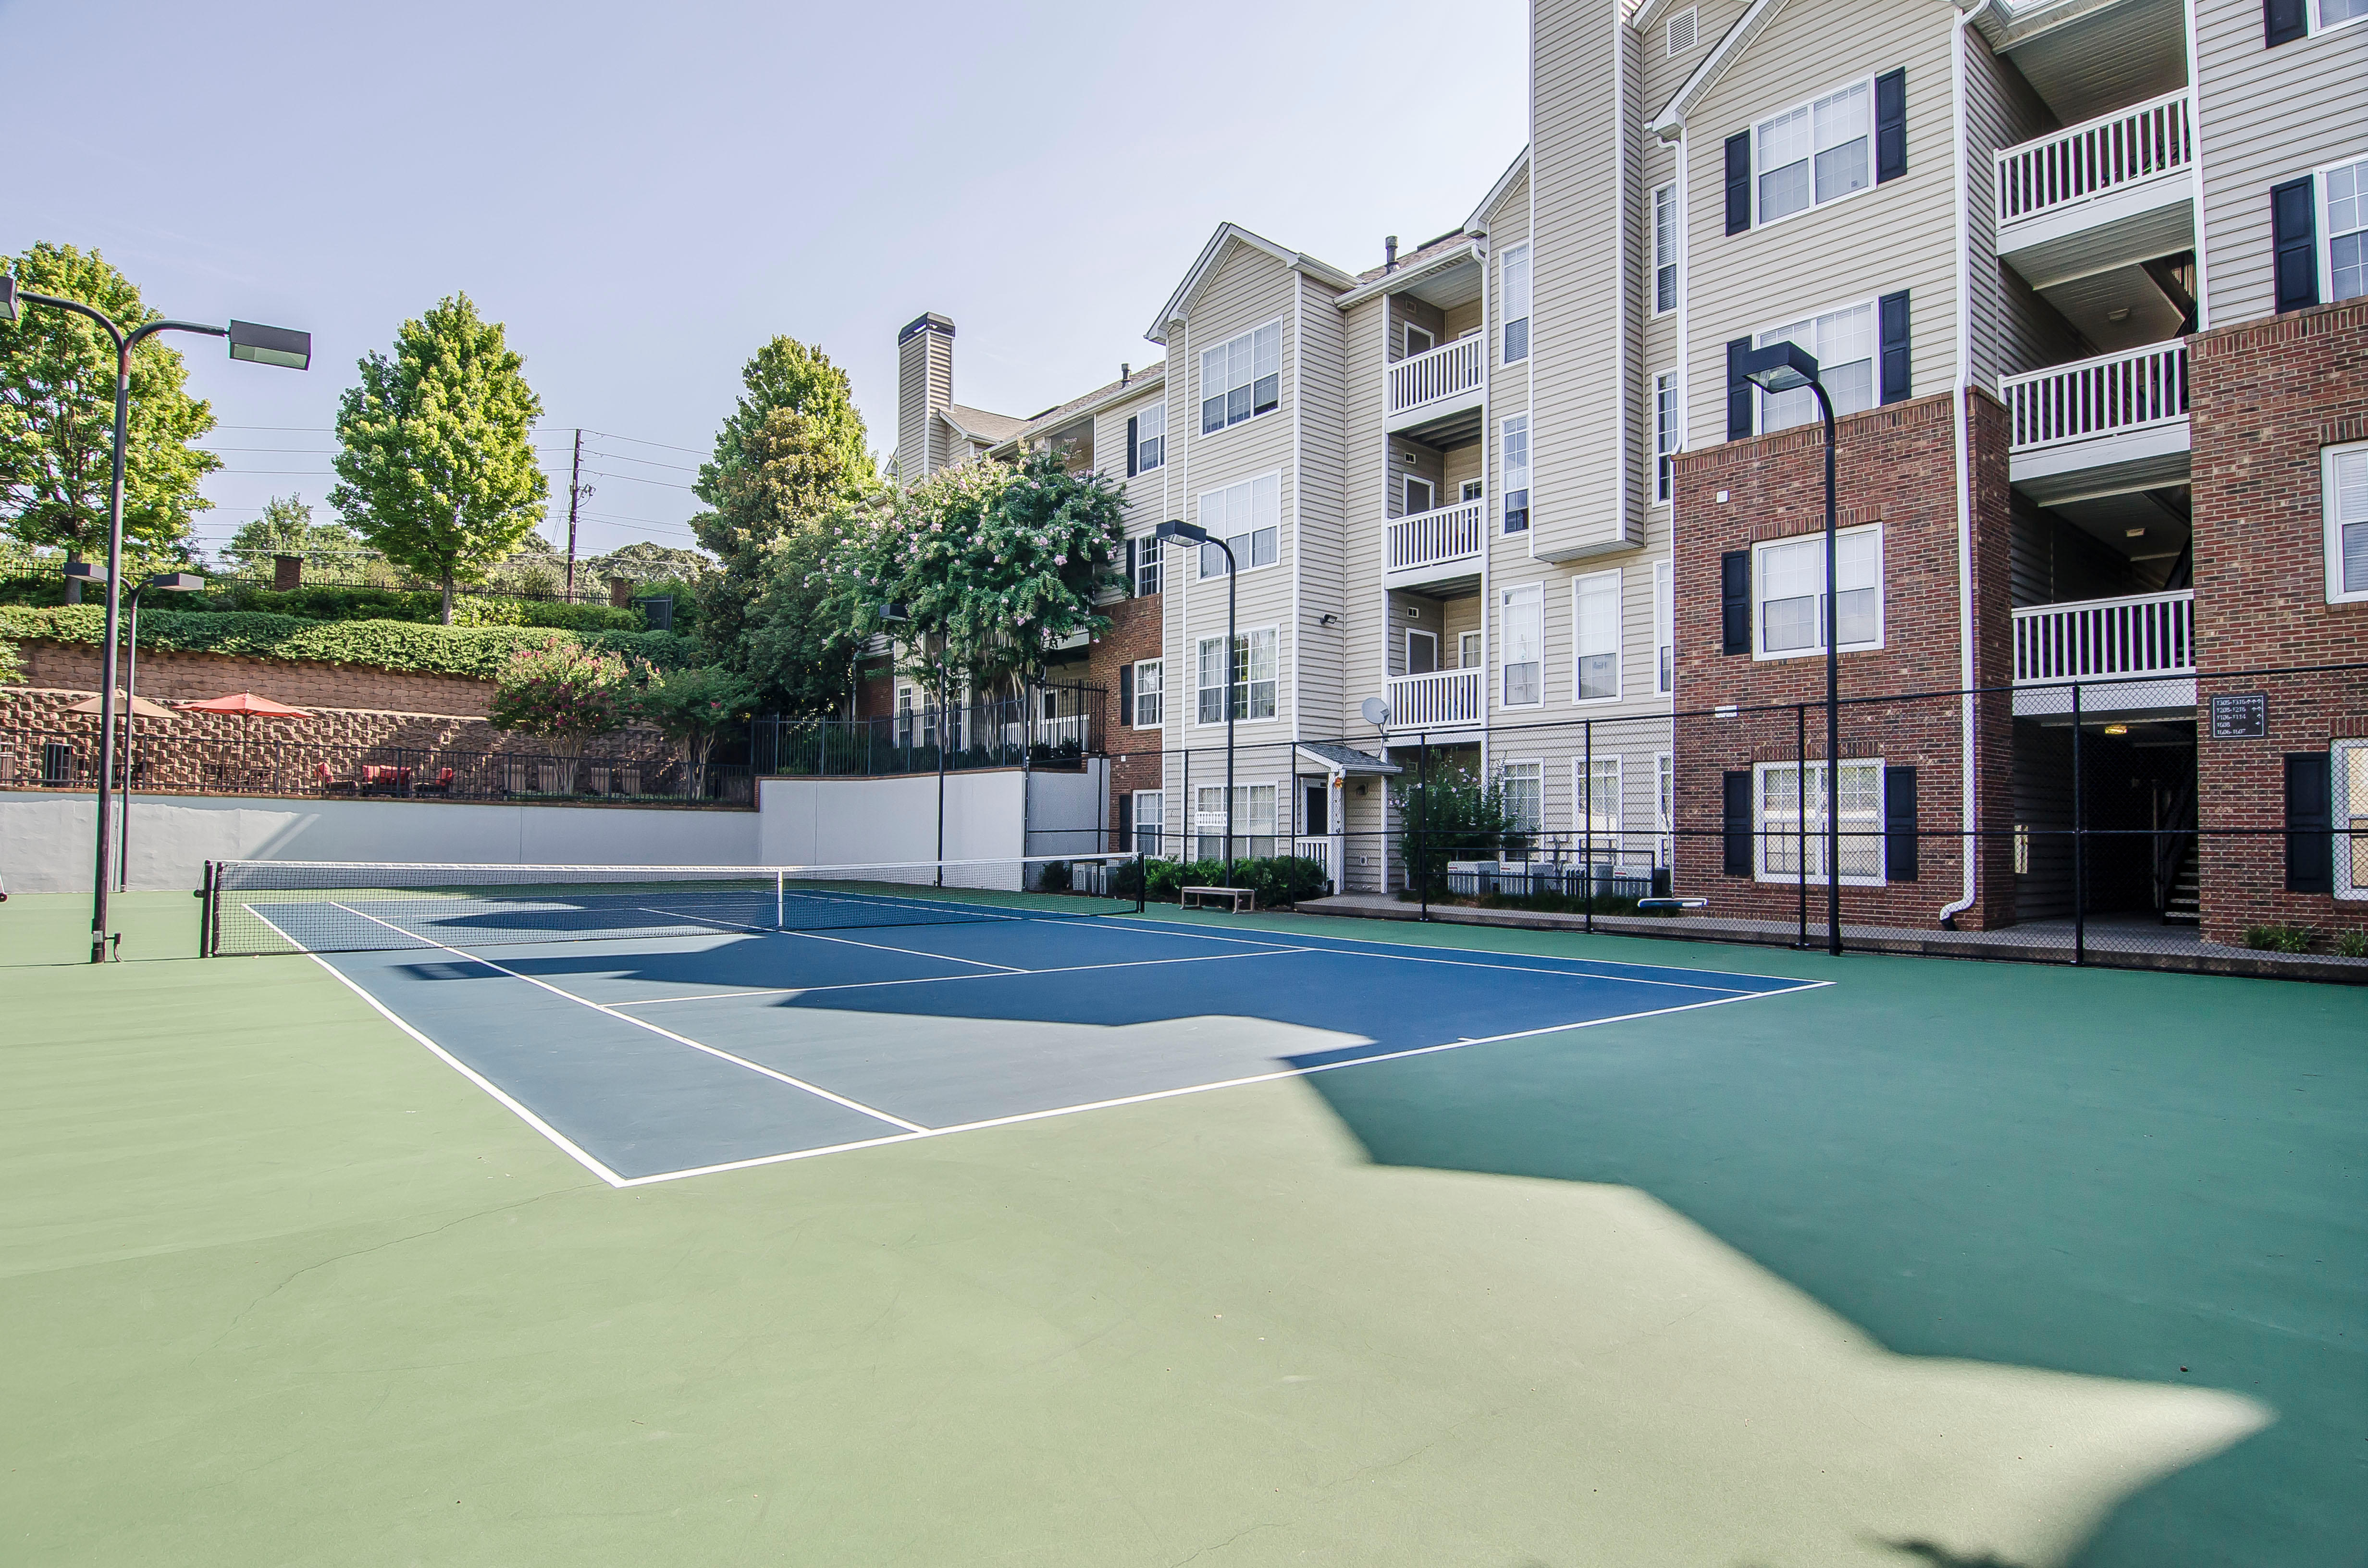 The Pointe at Collier Hills image 9